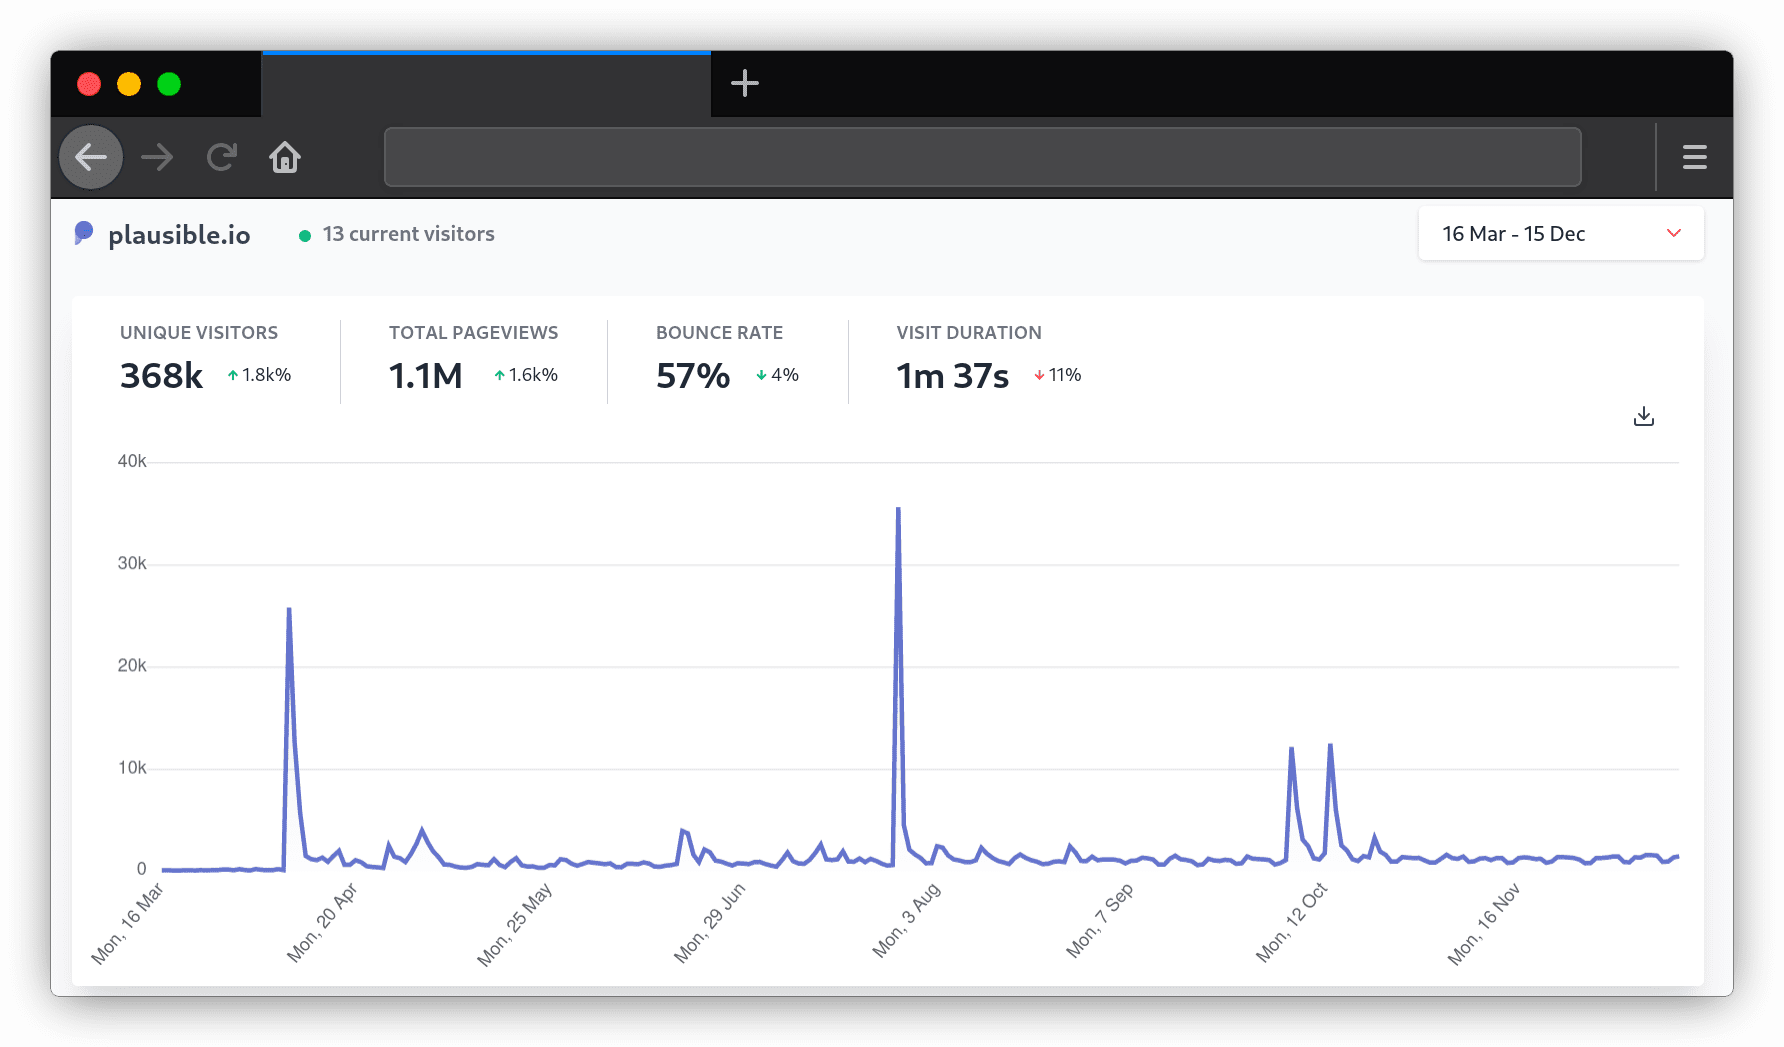 Building and growing an open source SaaS